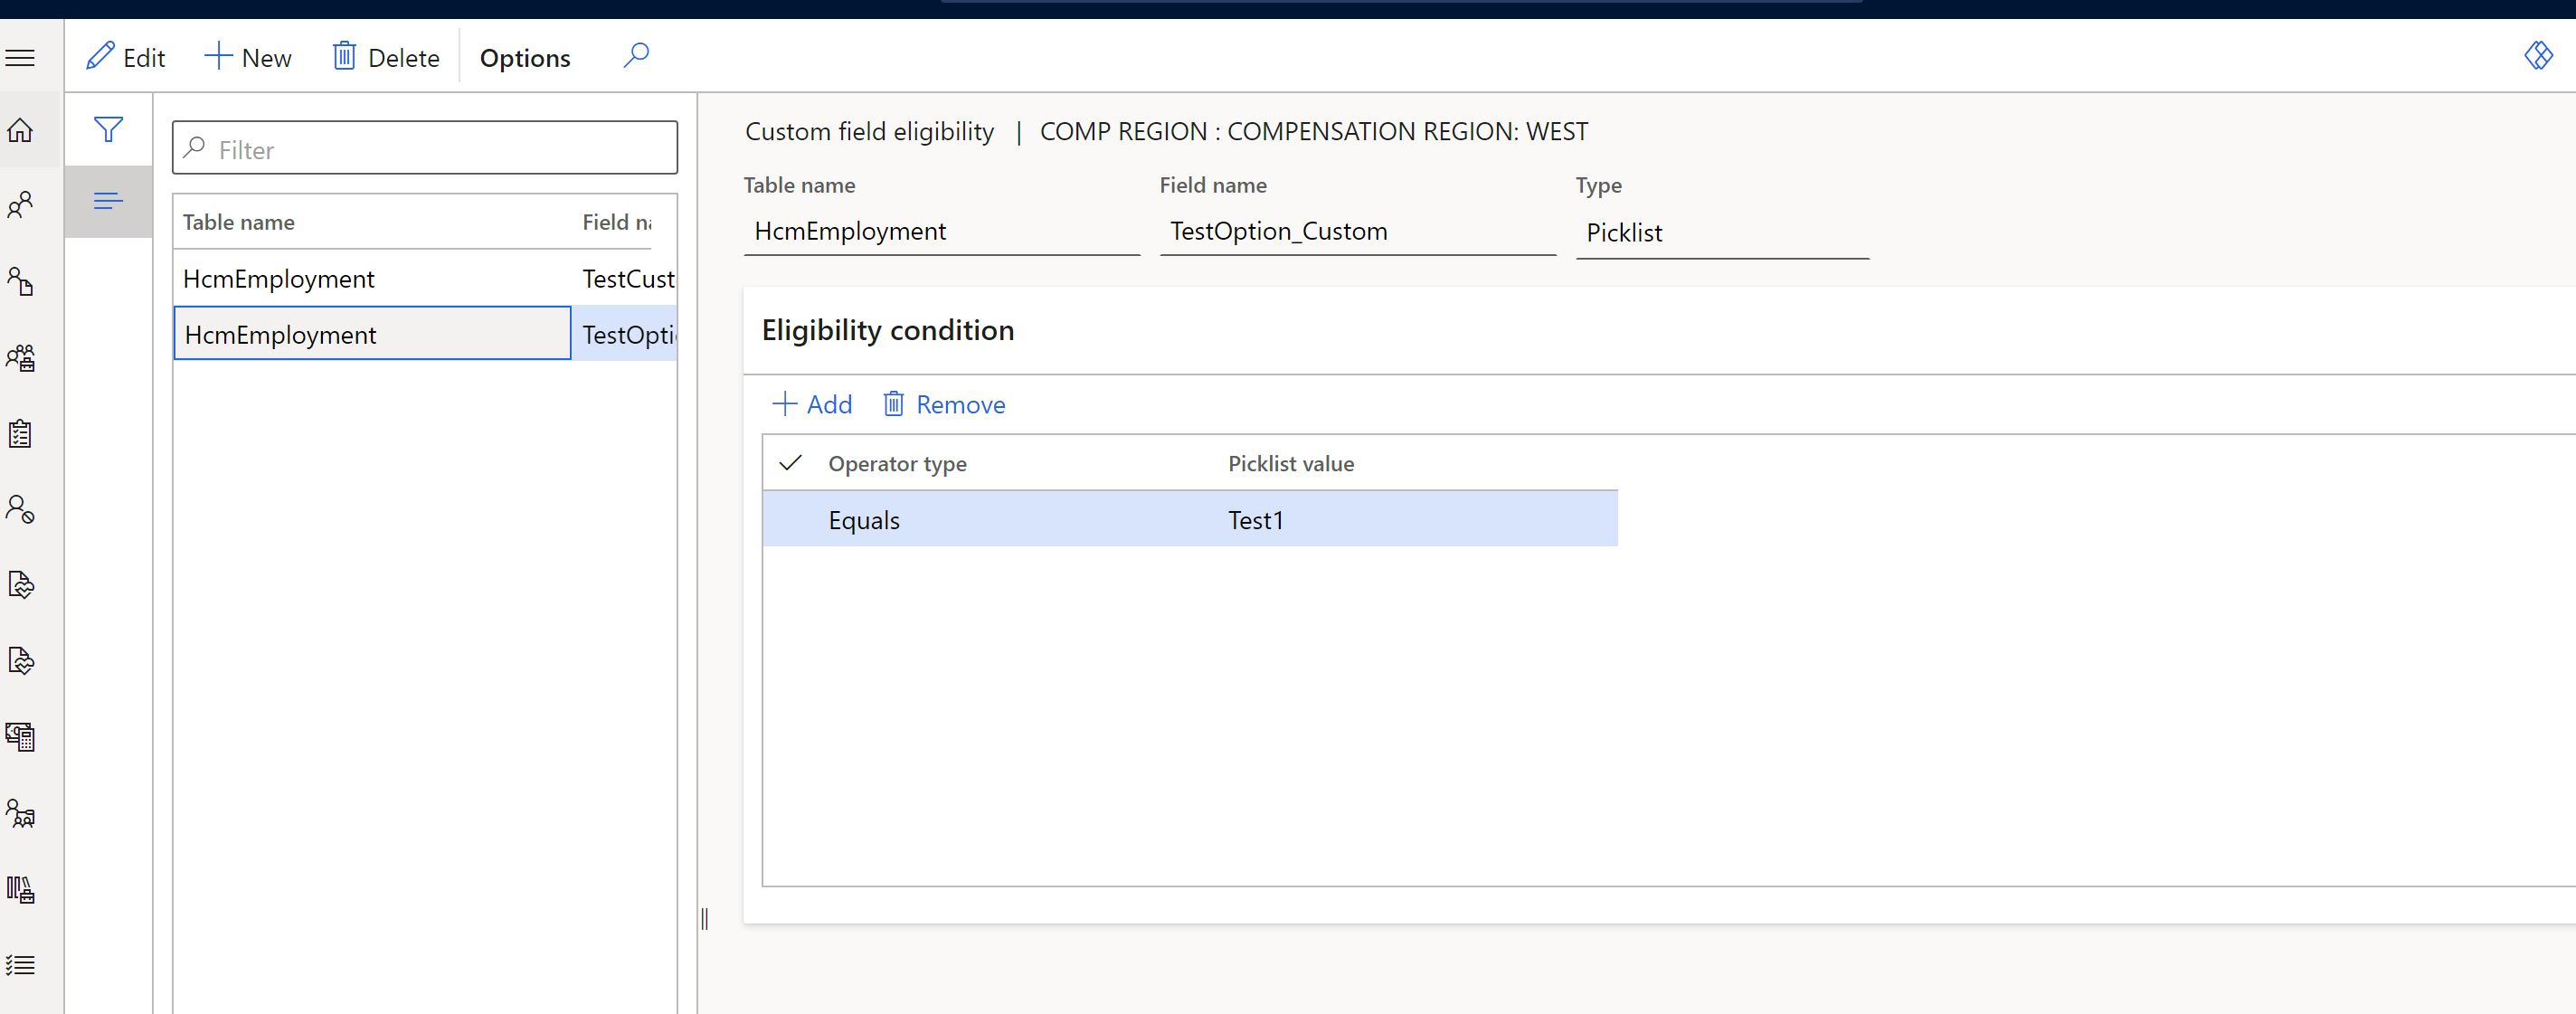 Custom fields configuration for eligibility rules